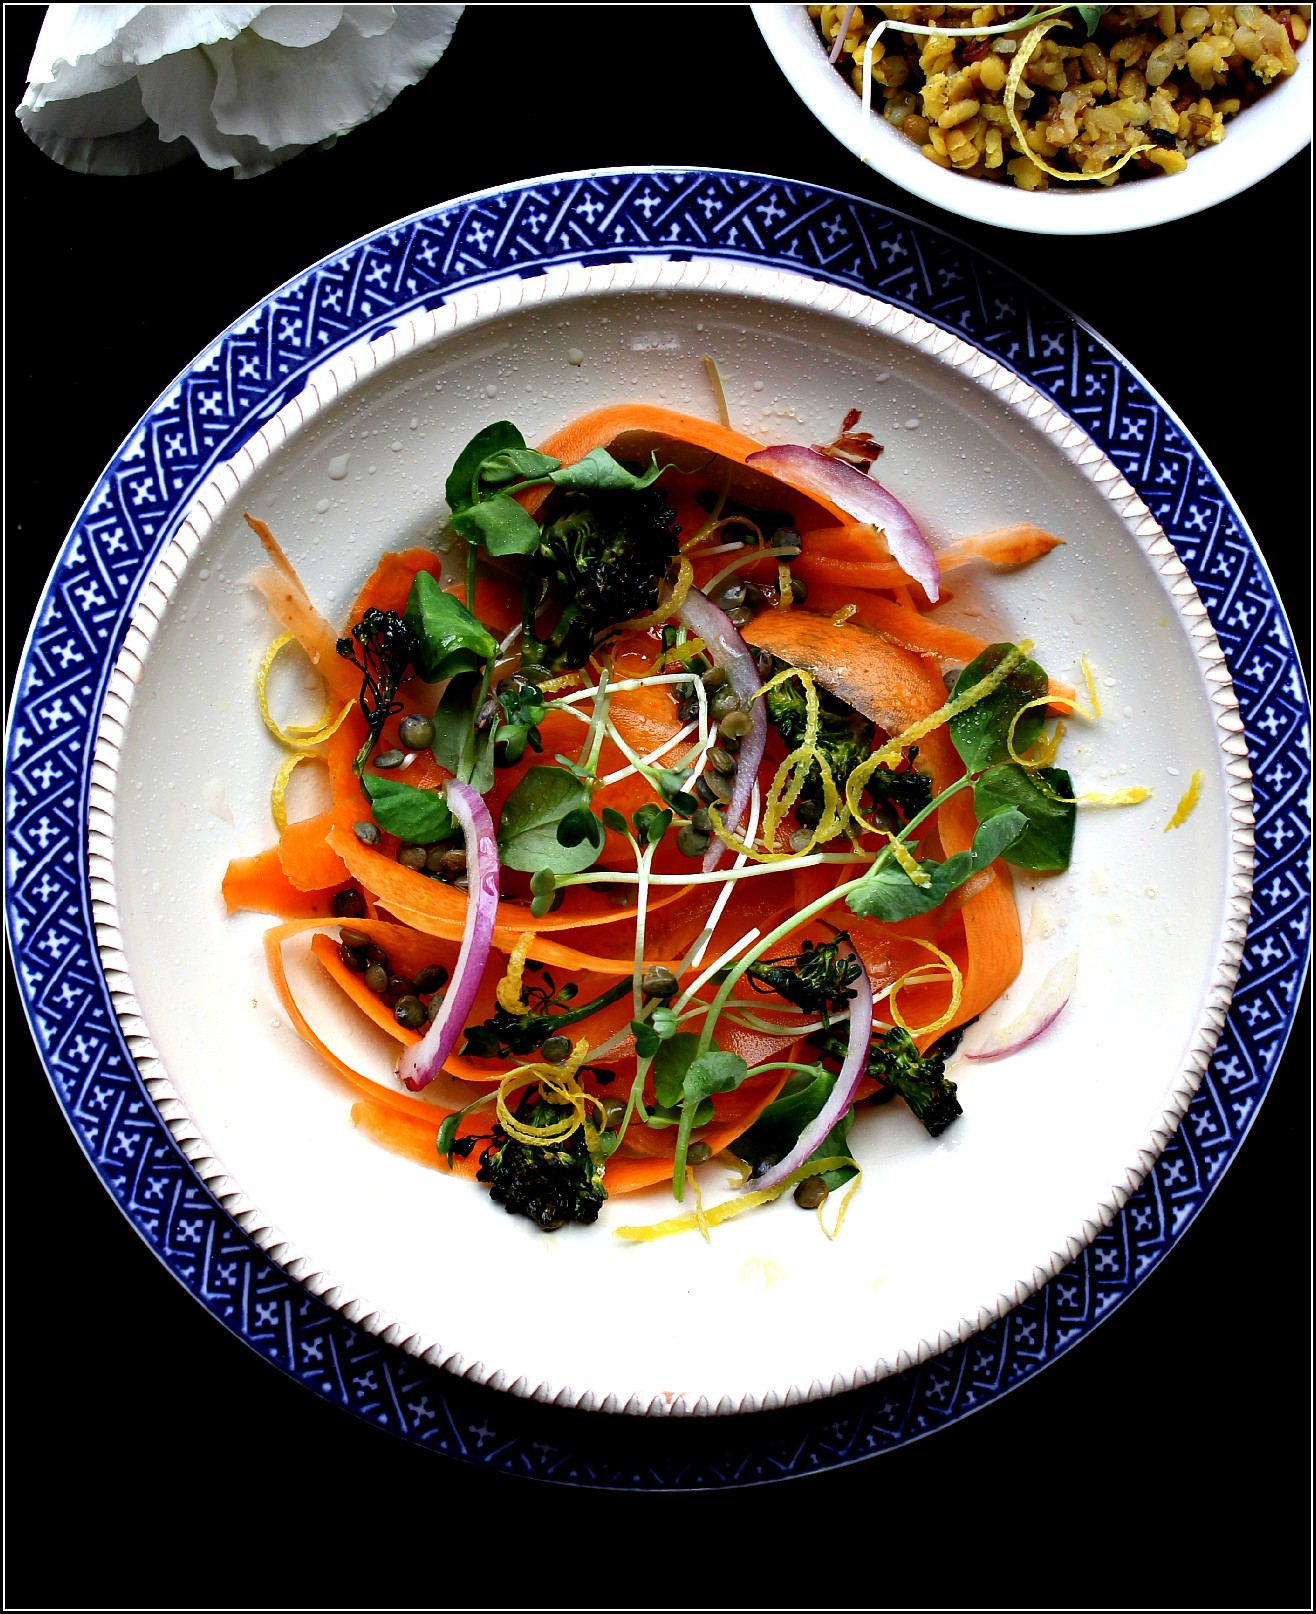 Carrot Salad on White Plate and Blue Border by Dena T Bray©